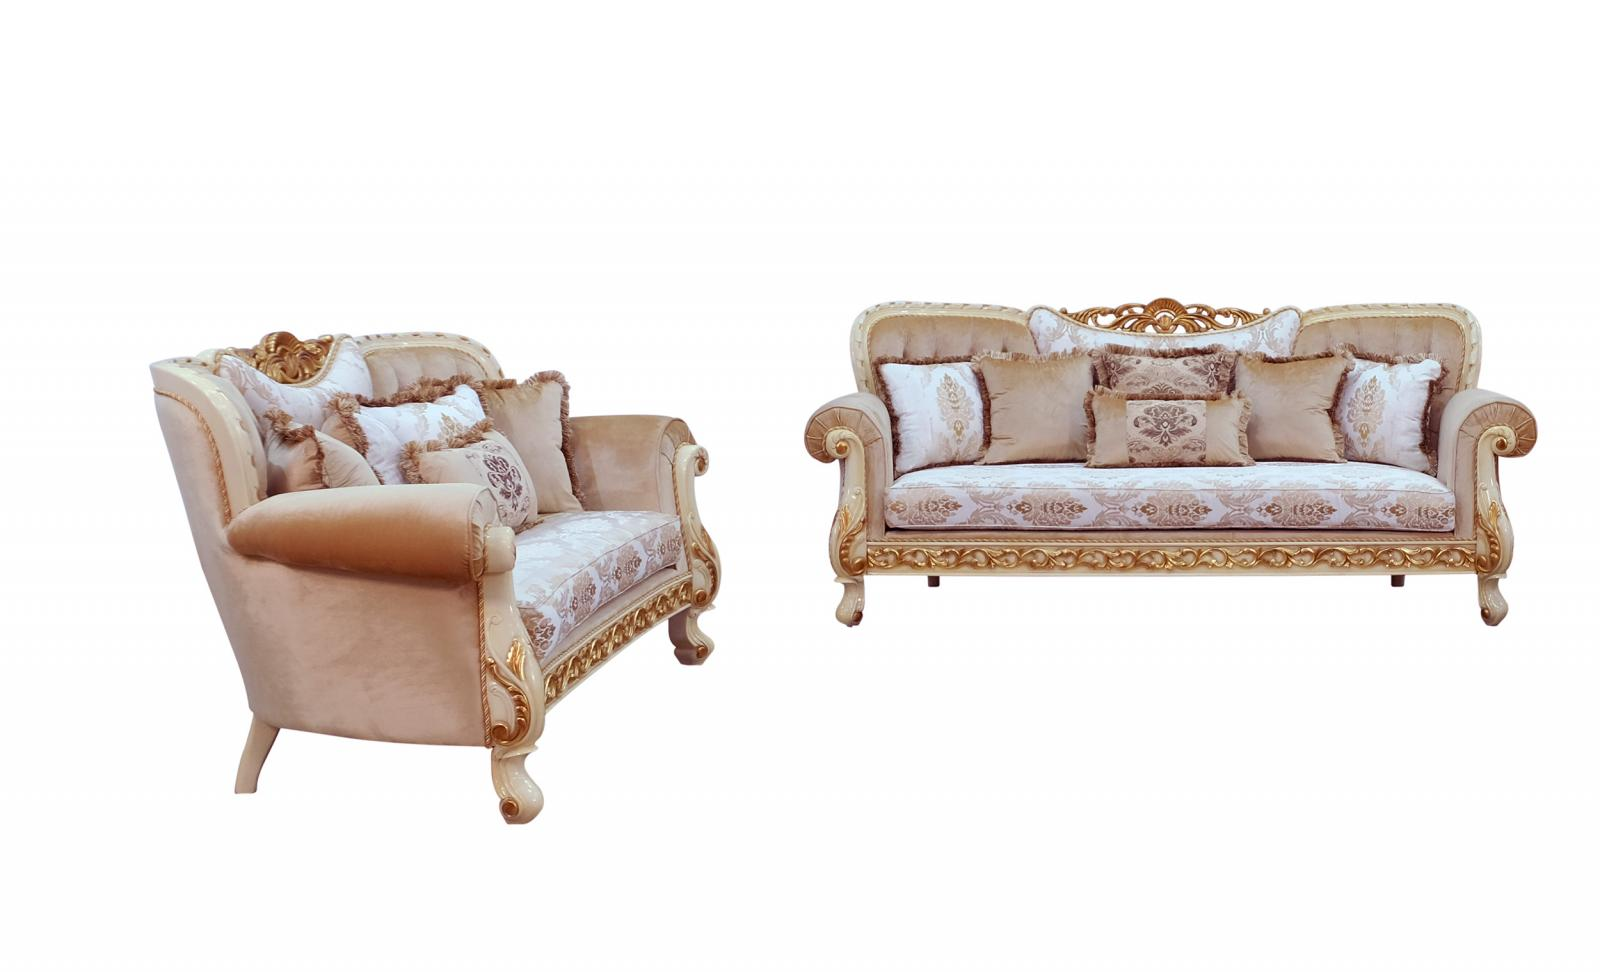 Classic  Traditional Gold  Sand  Off-White Wood  Solid Hardwood and Fabric Sofa Set EUROPEAN FURNITURE 40015-S-Set-2